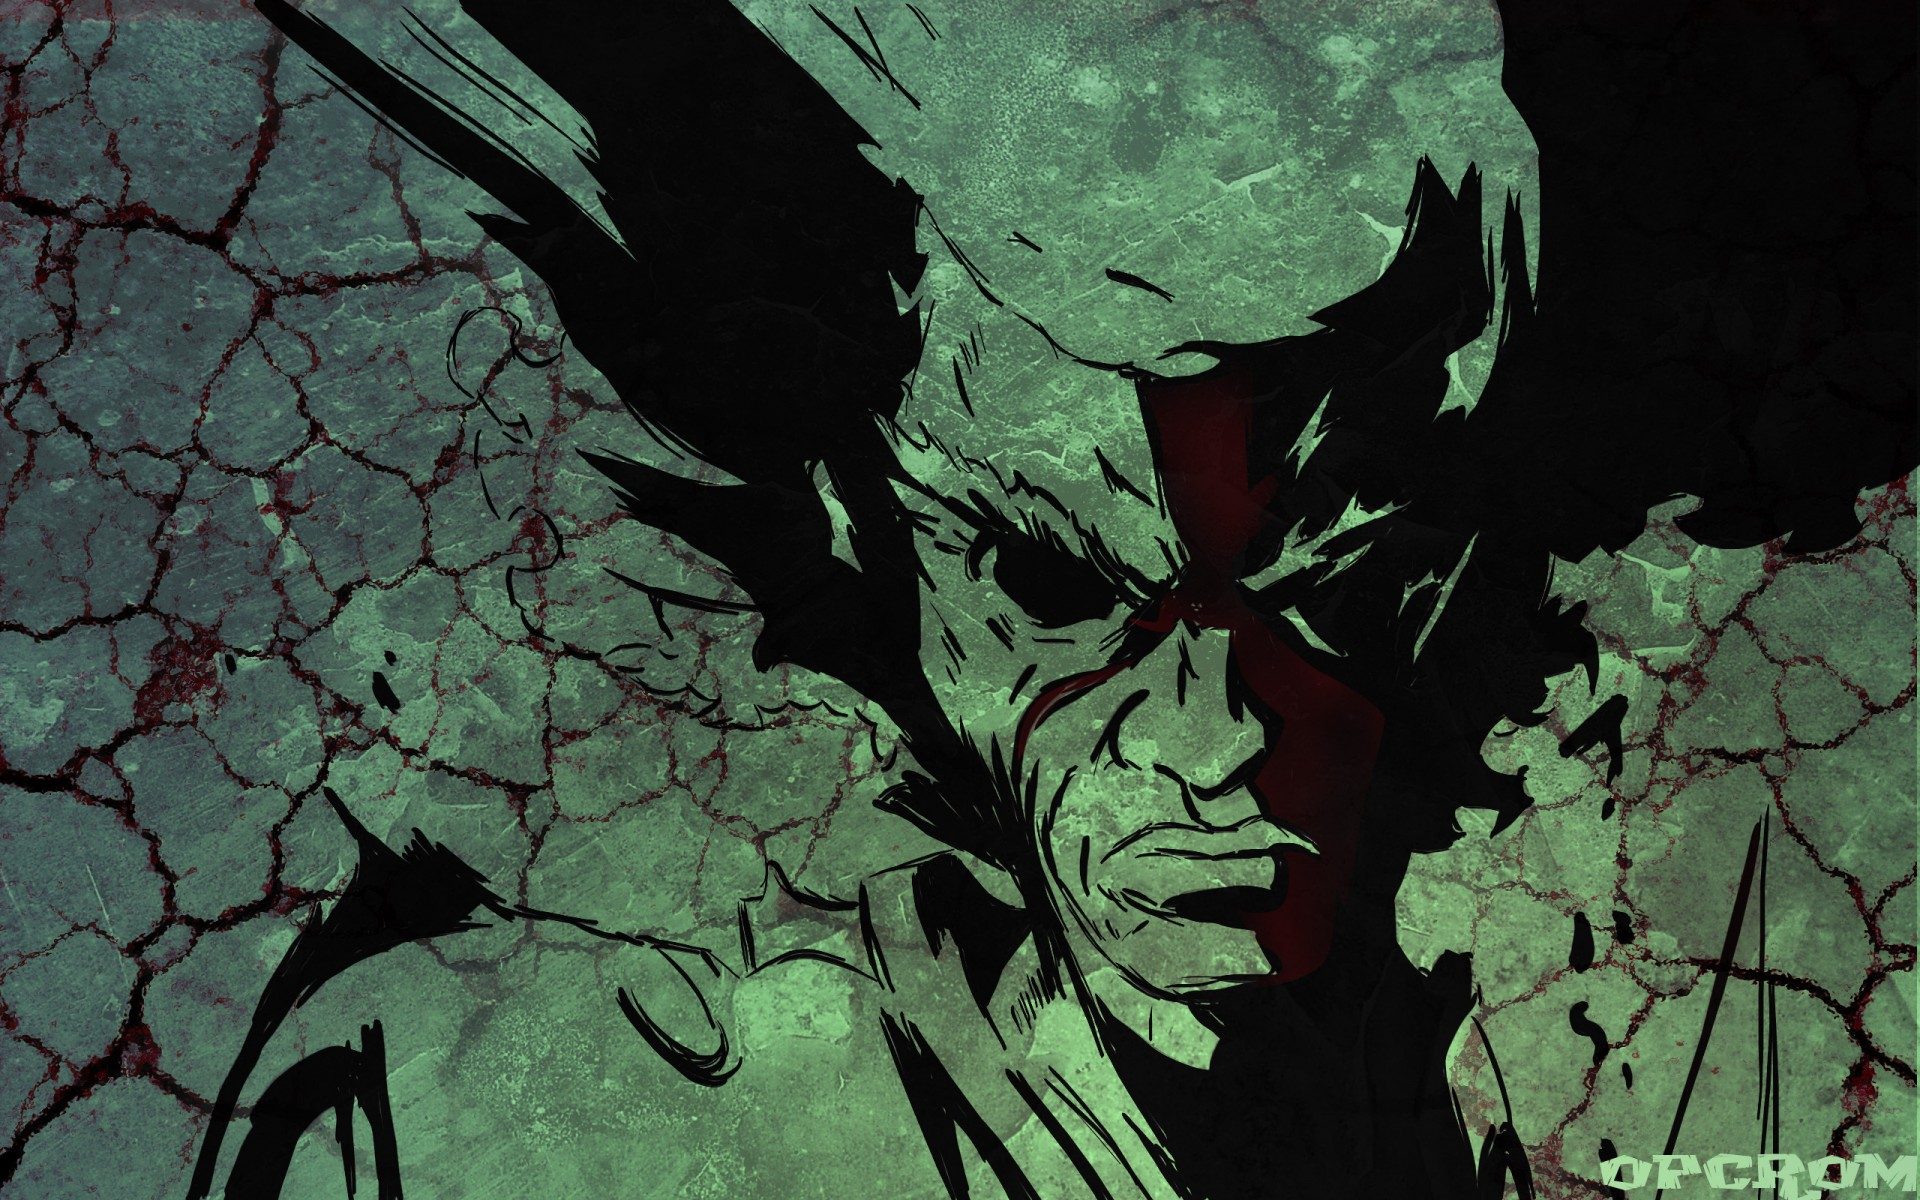 100 Quality Hd Images Collection Of Afro Samurai Eligio